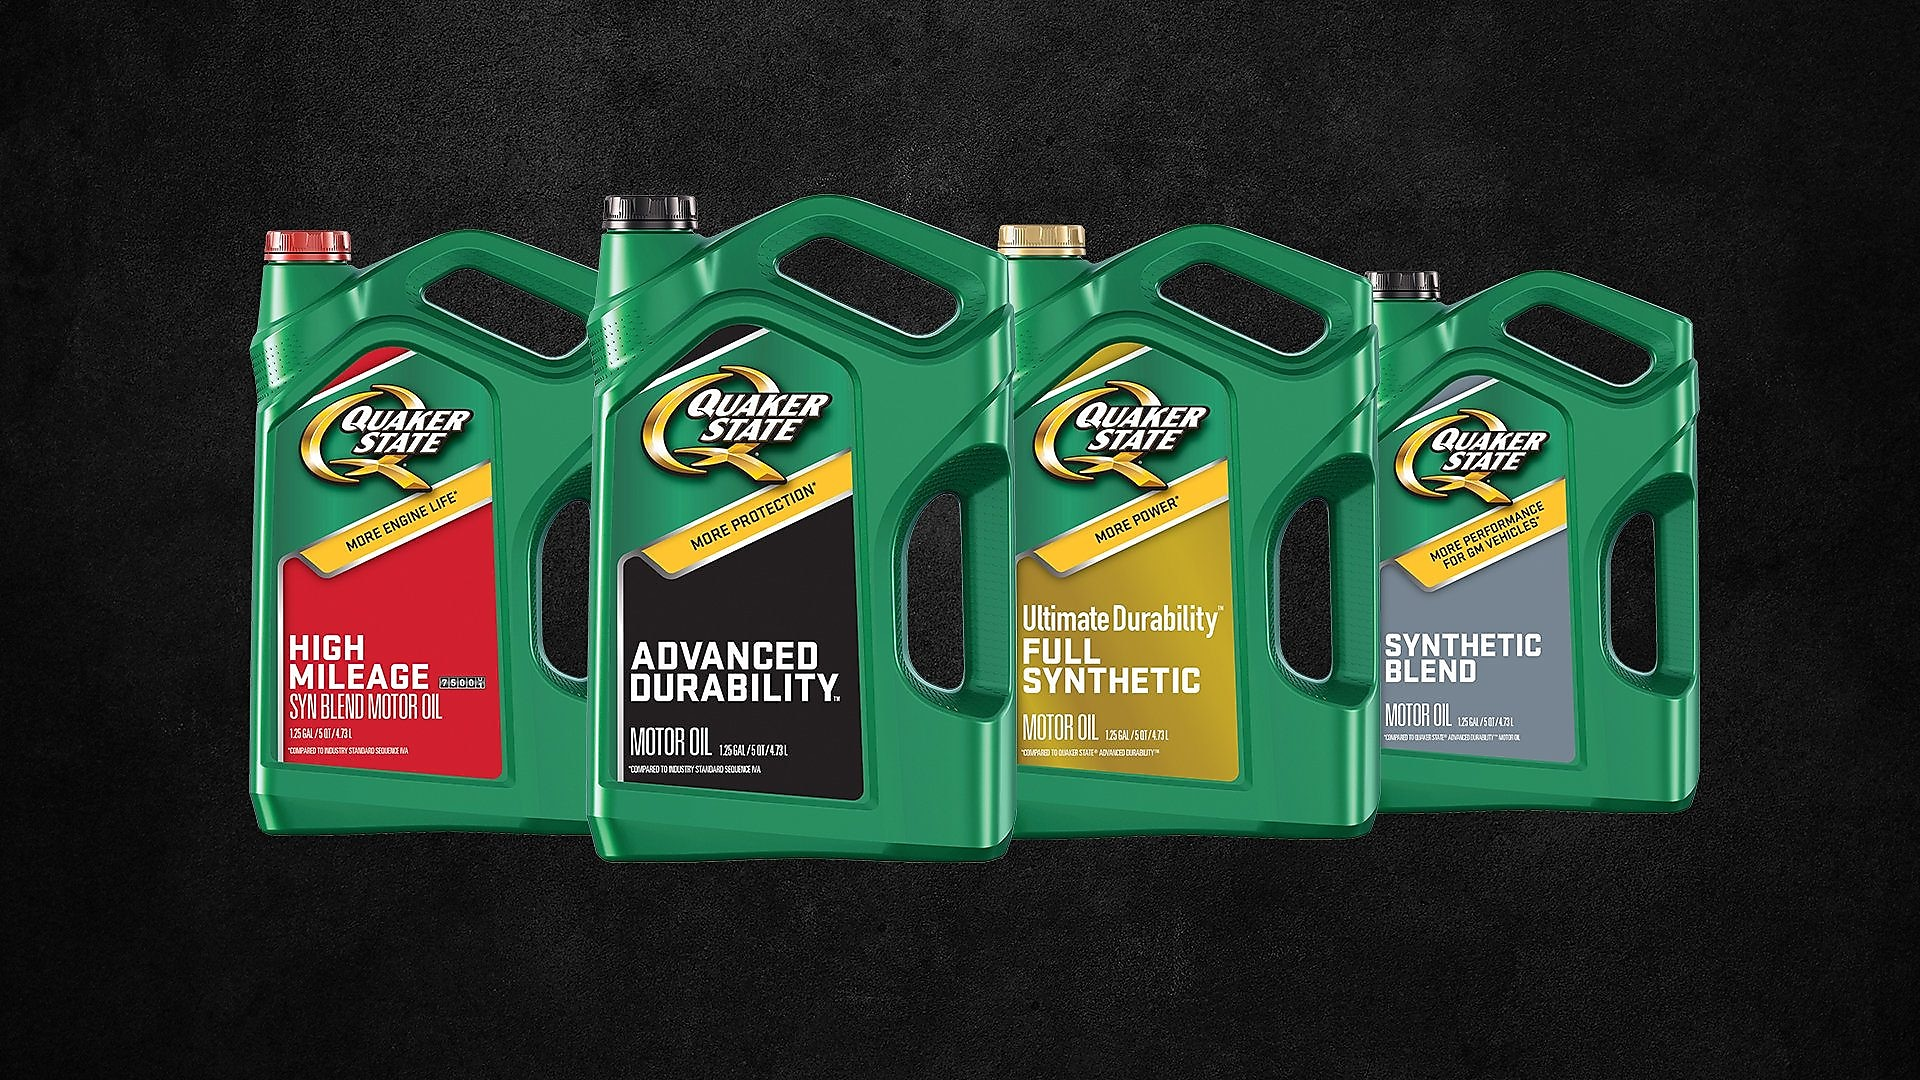 New Green Bottle – Same Reliable Oil | United States